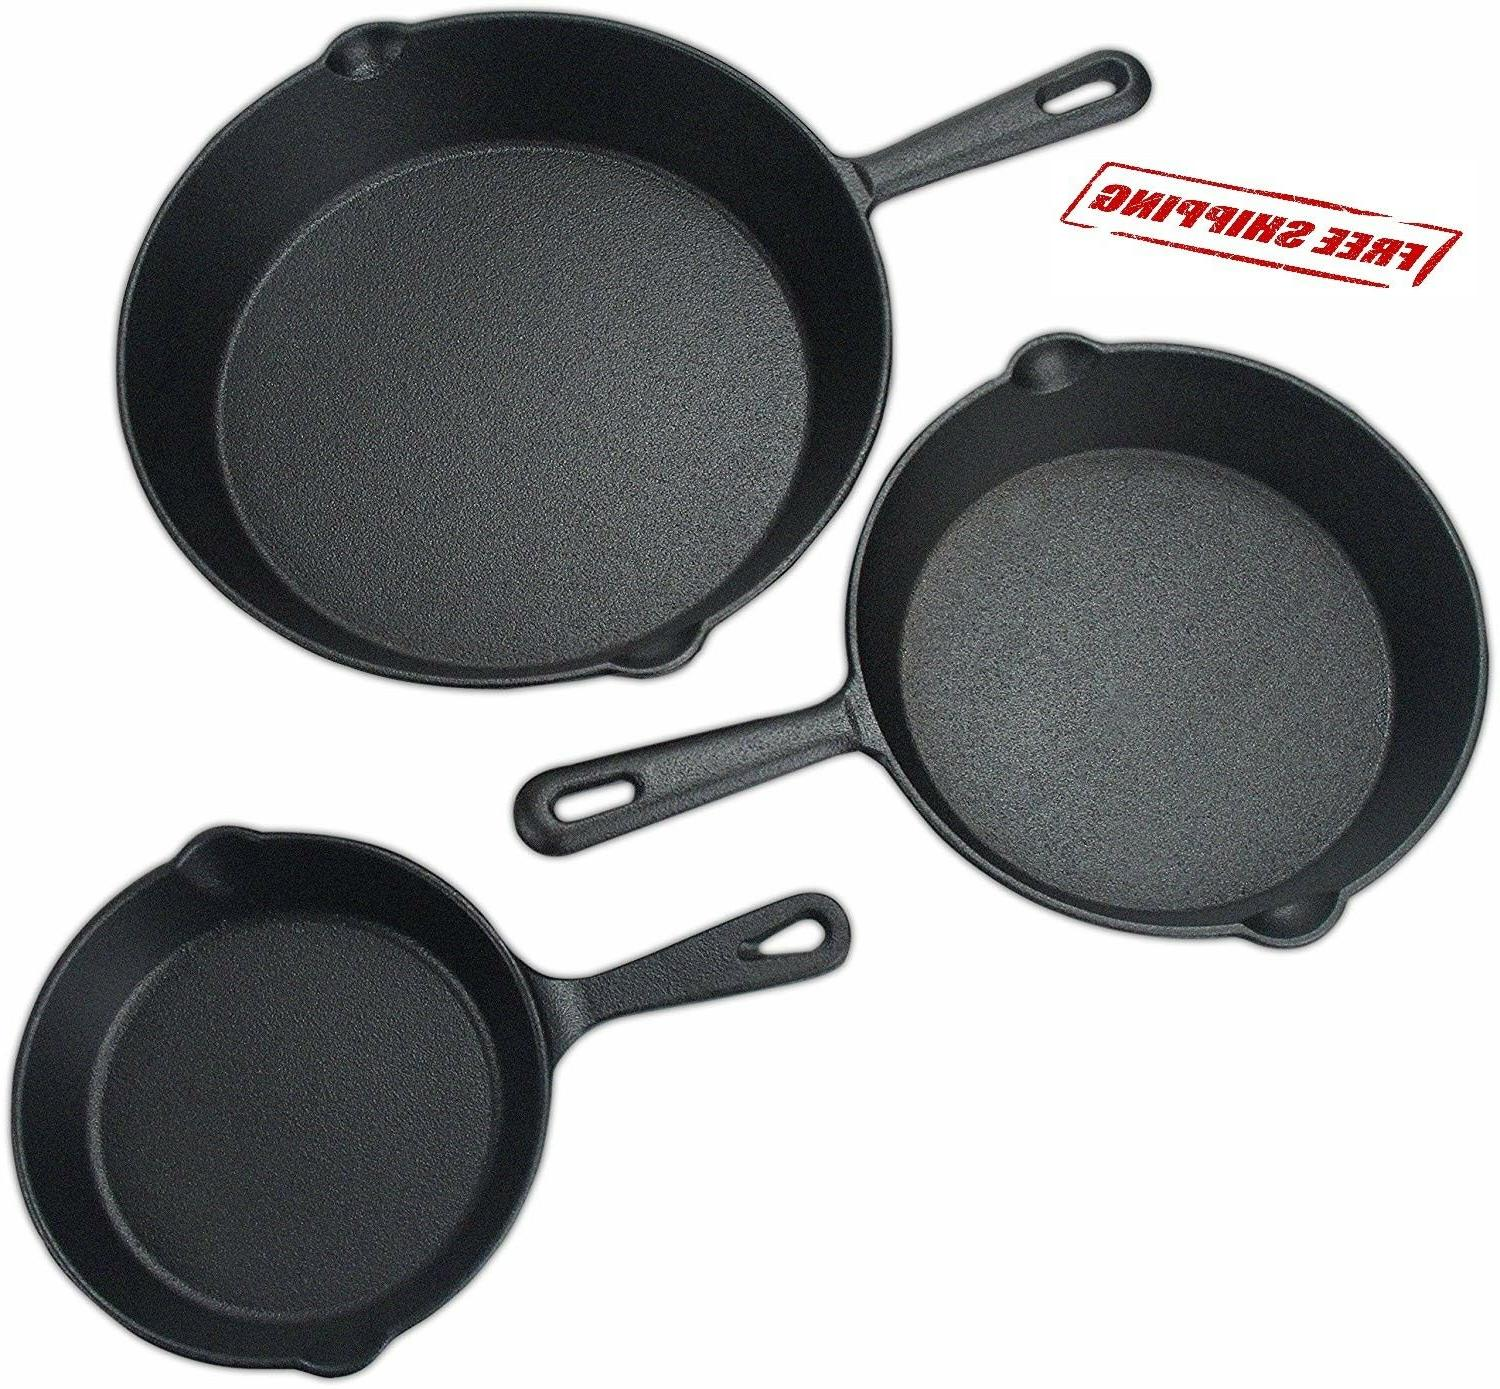 3 pcs set pre seasoned cast iron